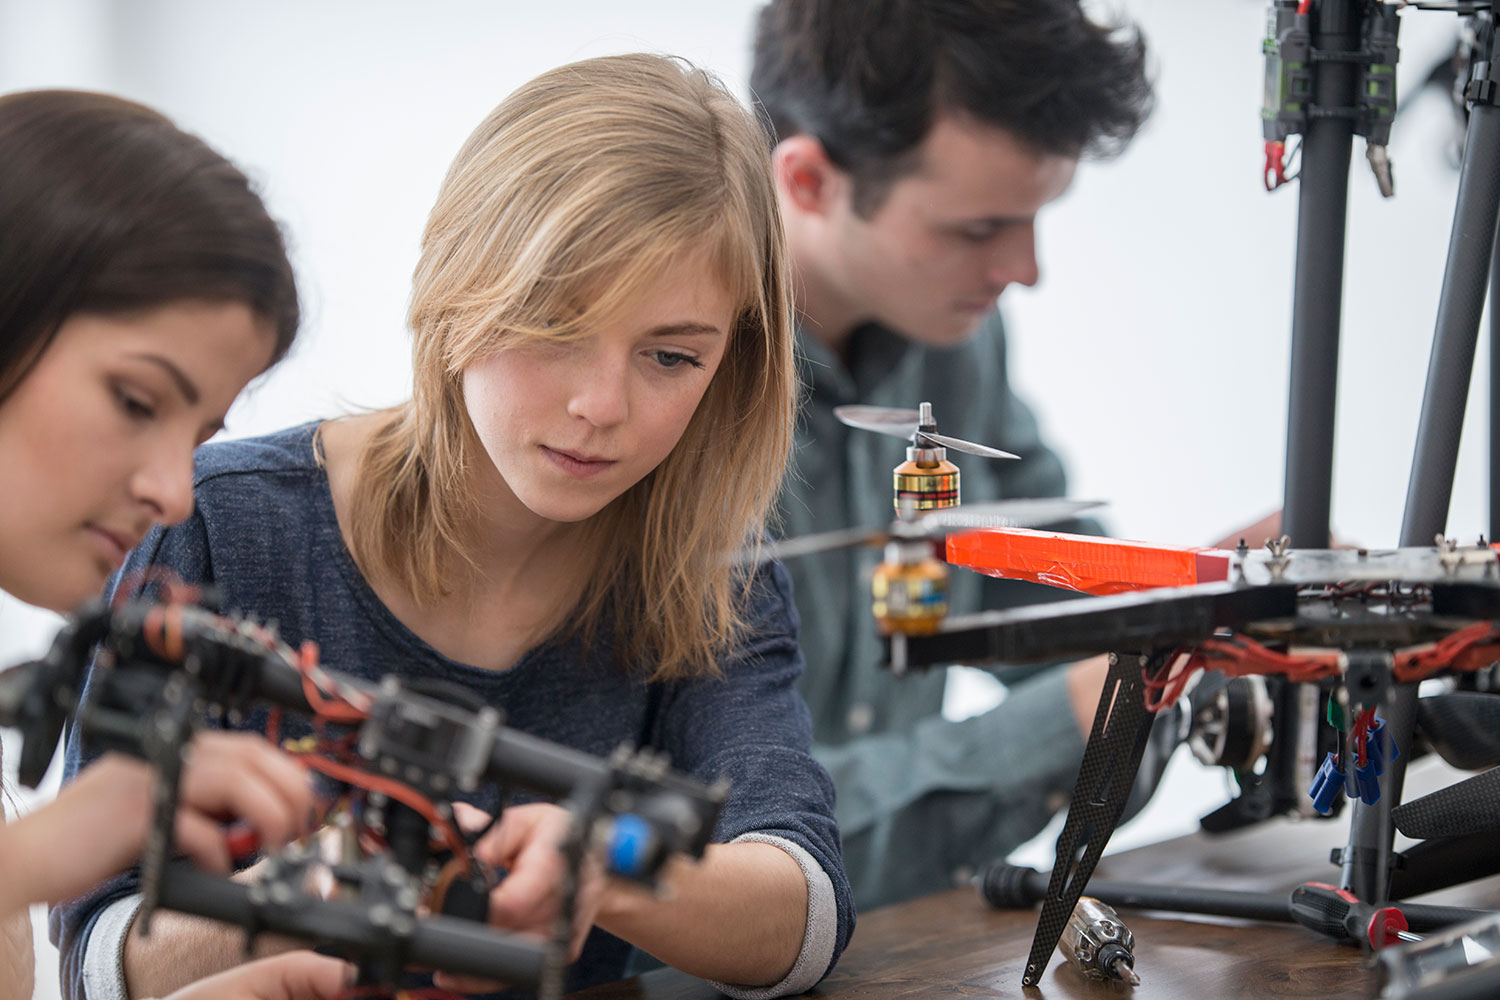 Three students work on drones